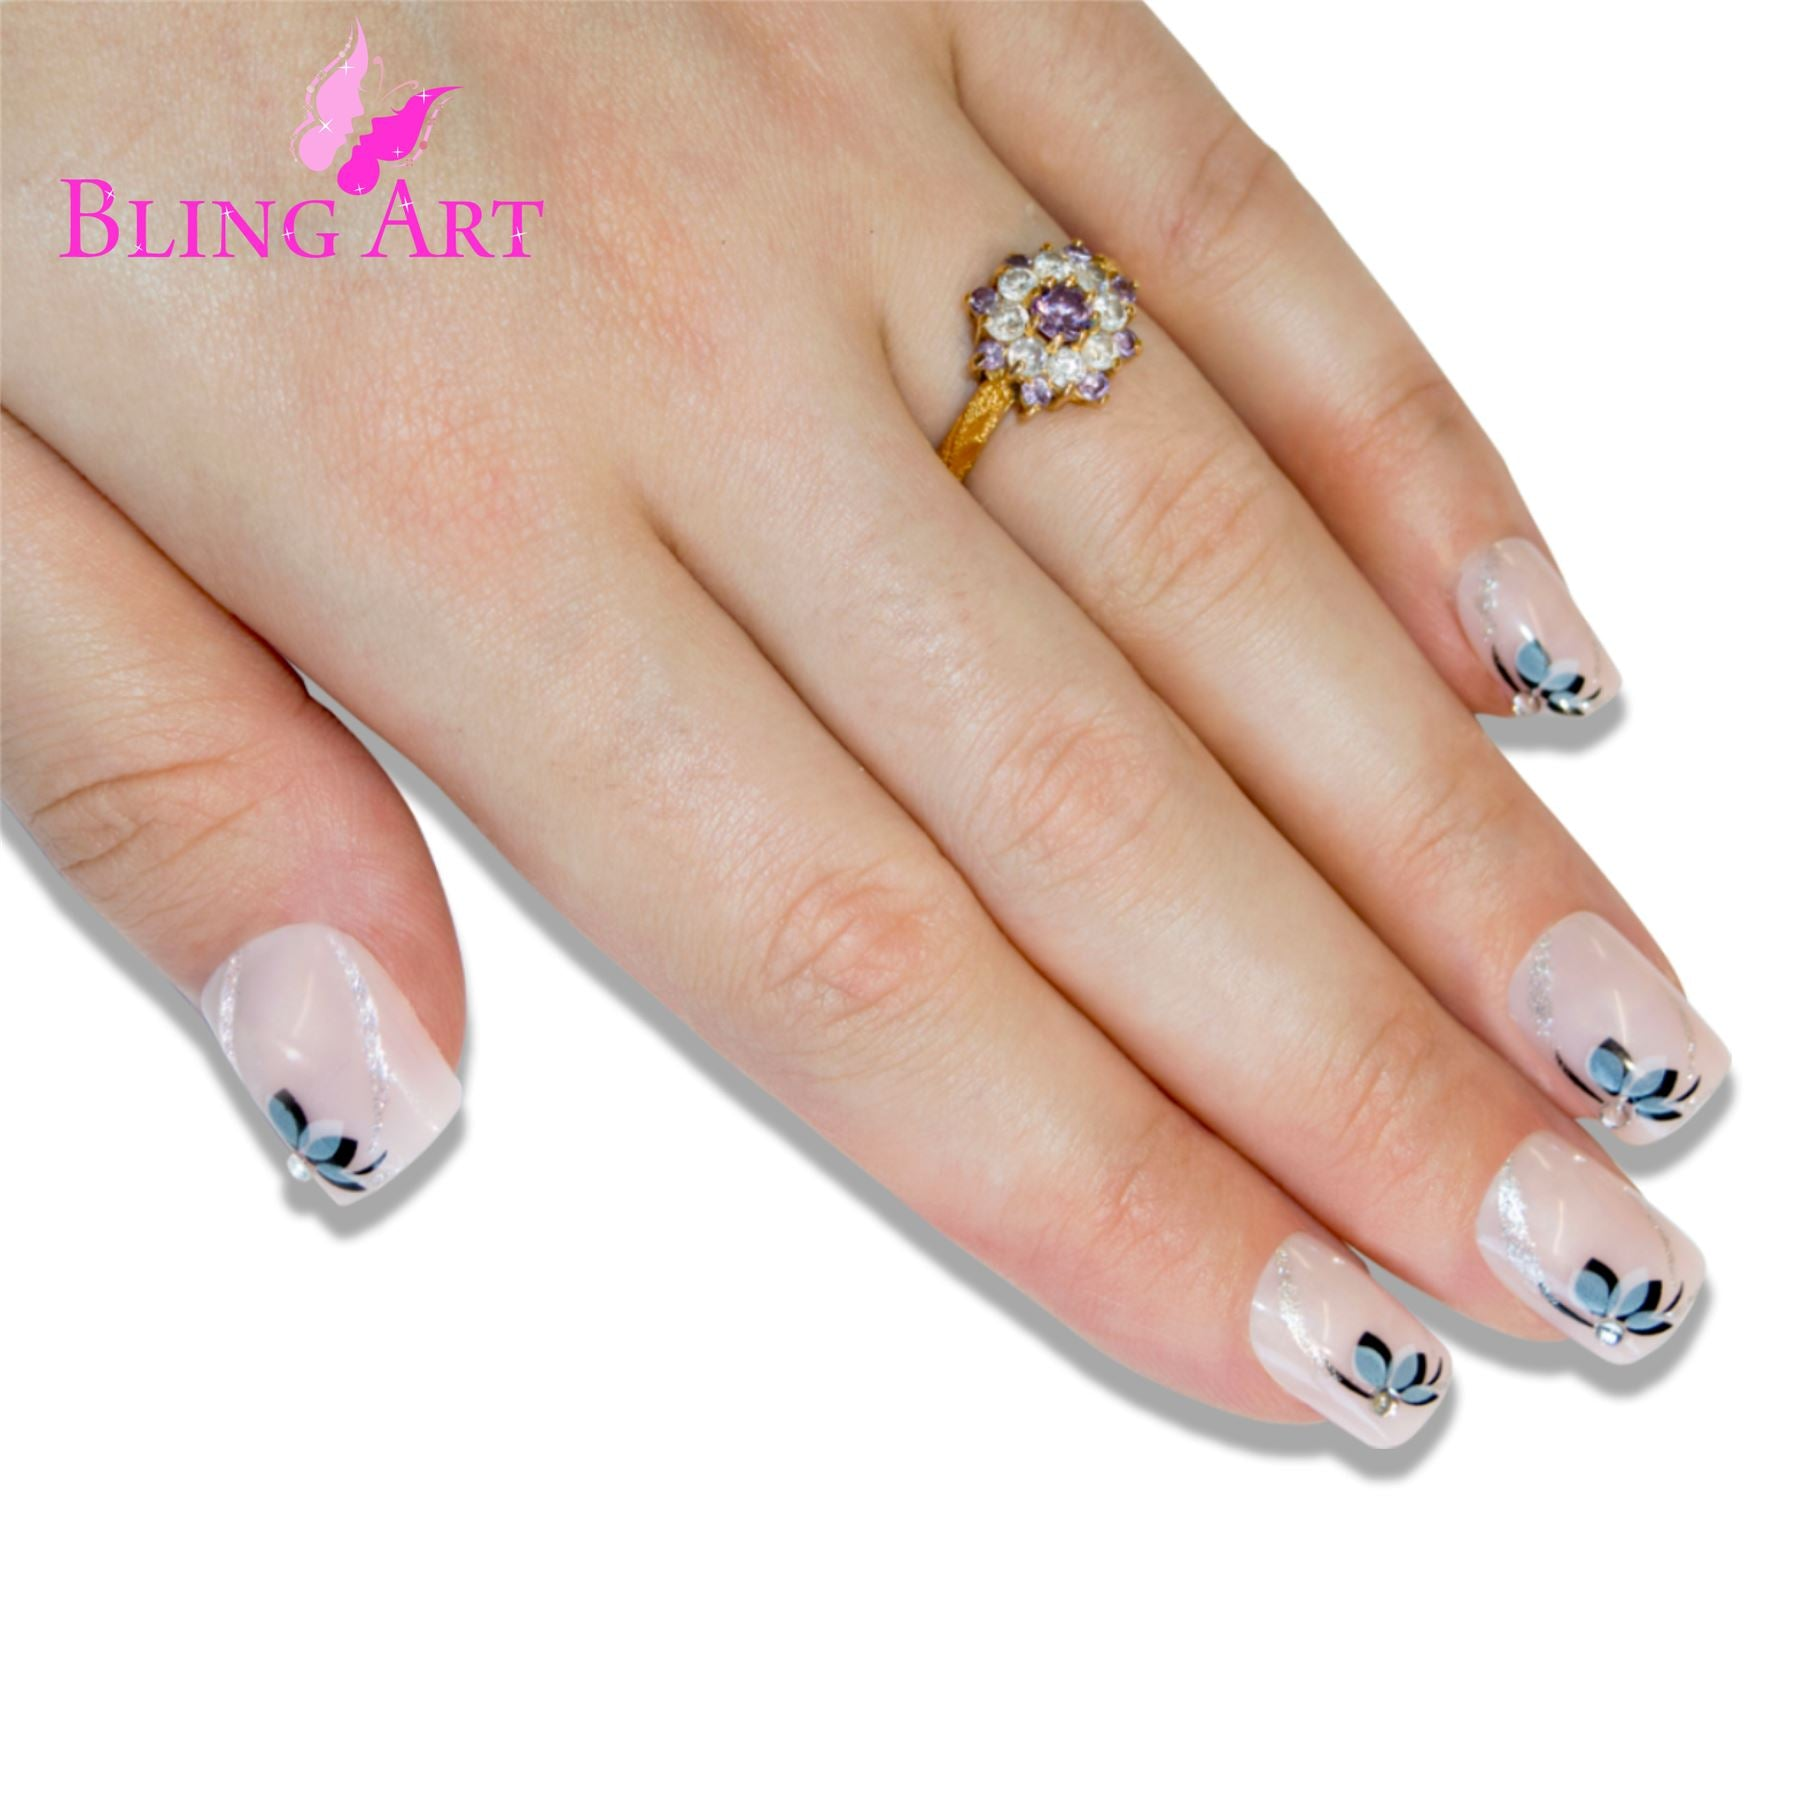 False Nails by Bling Art White Black Flower French Manicure Fake Medium Tips Glue